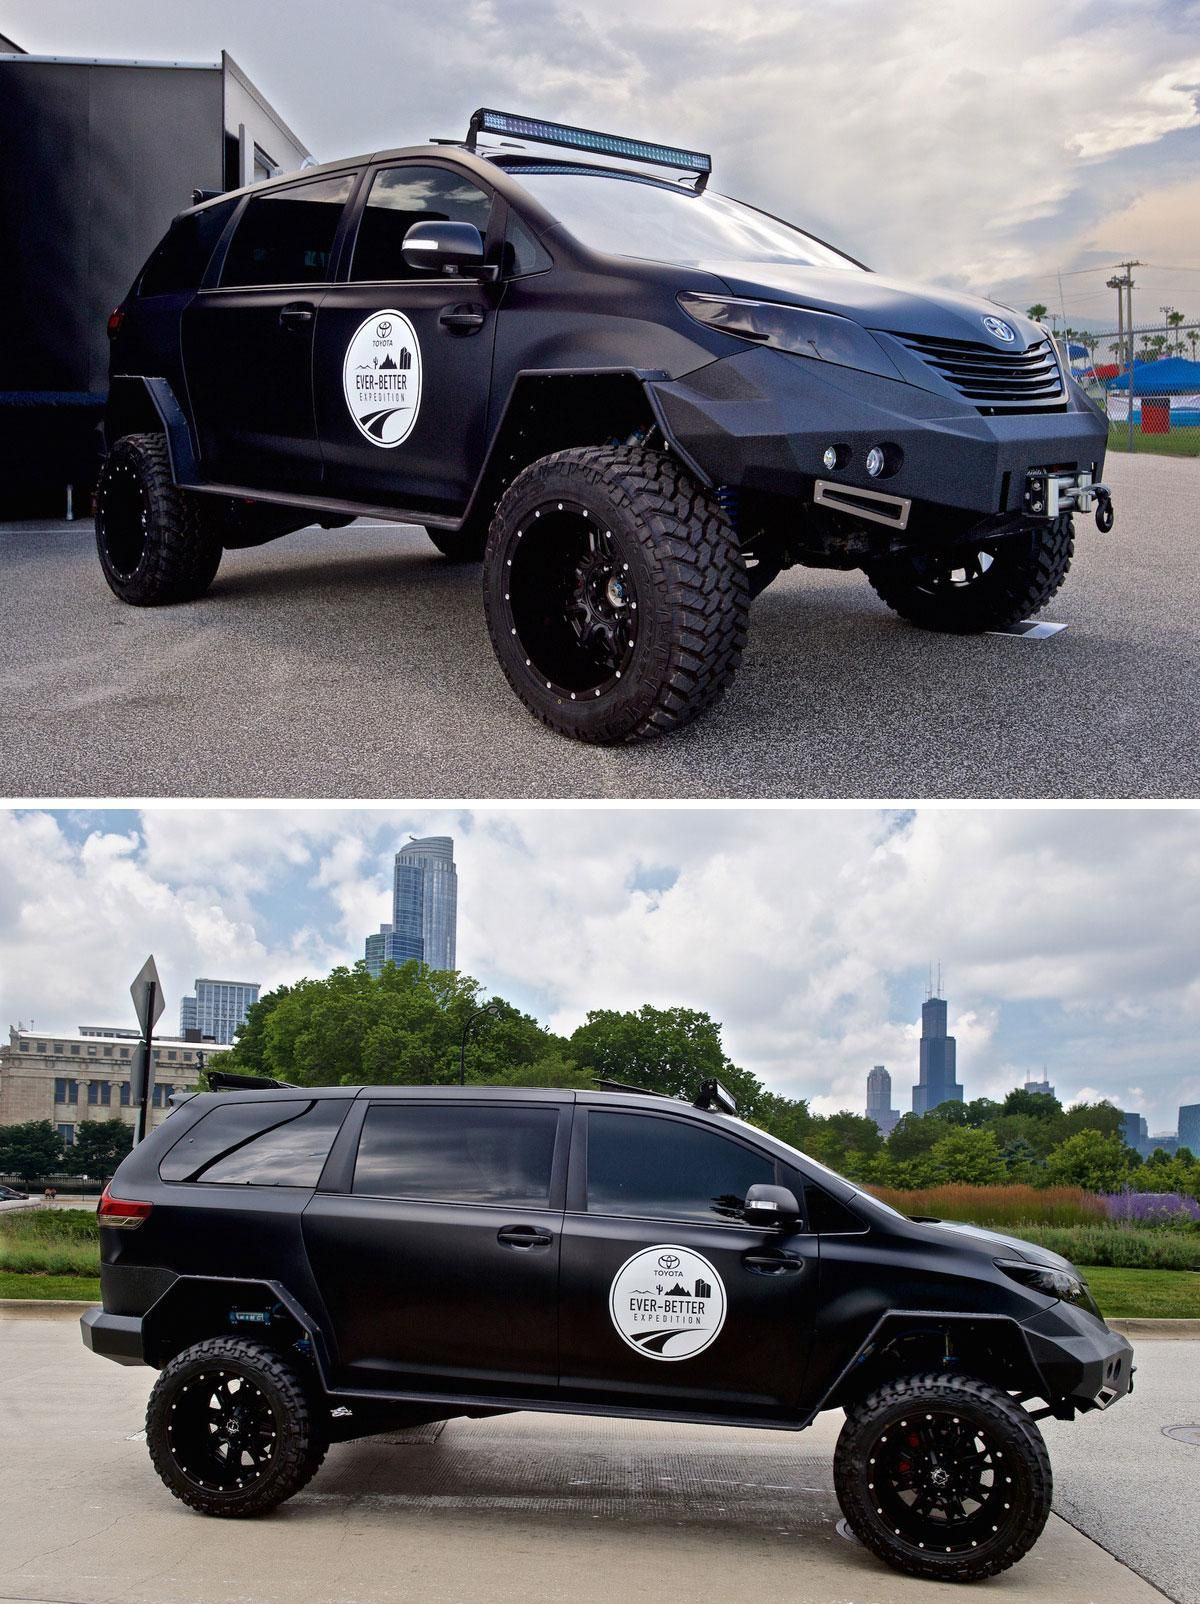 Toyota builds an all terrain minivan just because it can new cars of all kinds pinterest minivan toyota and nissan maxima